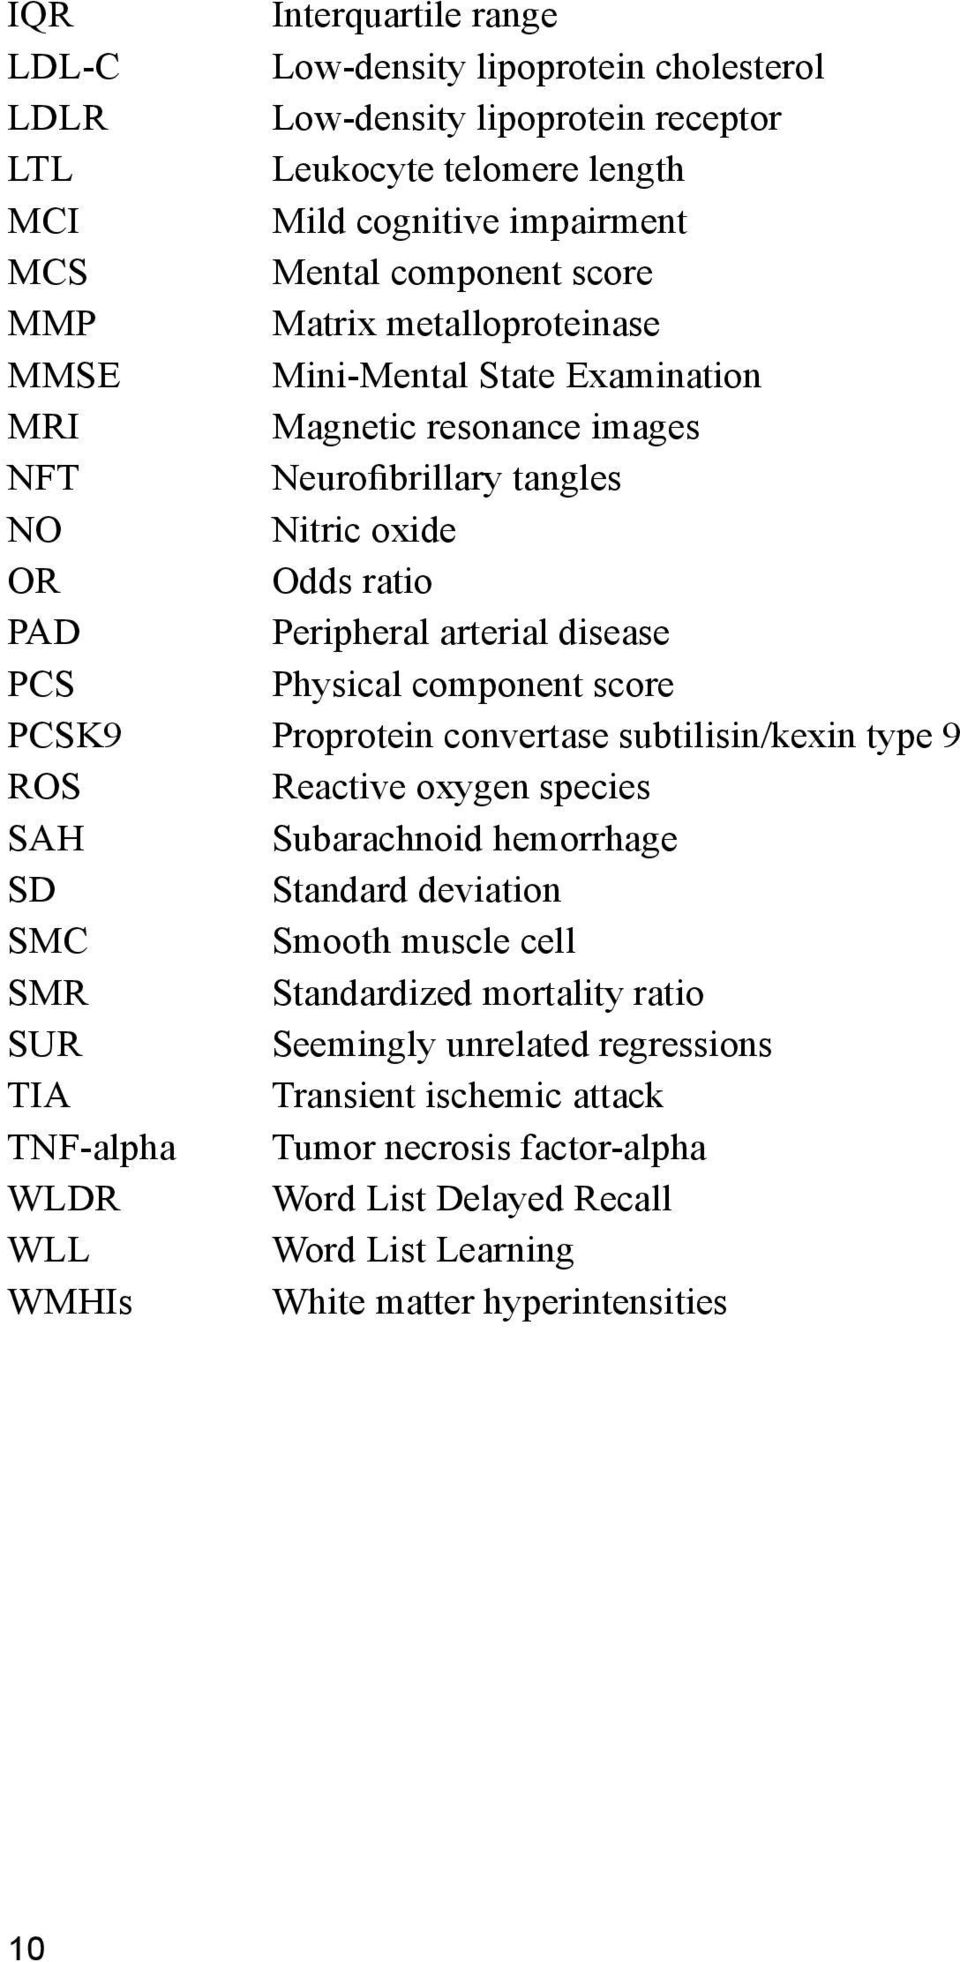 component score PCSK9 Proprotein convertase subtilisin/kexin type 9 ROS Reactive oxygen species SAH Subarachnoid hemorrhage SD Standard deviation SMC Smooth muscle cell SMR Standardized mortality